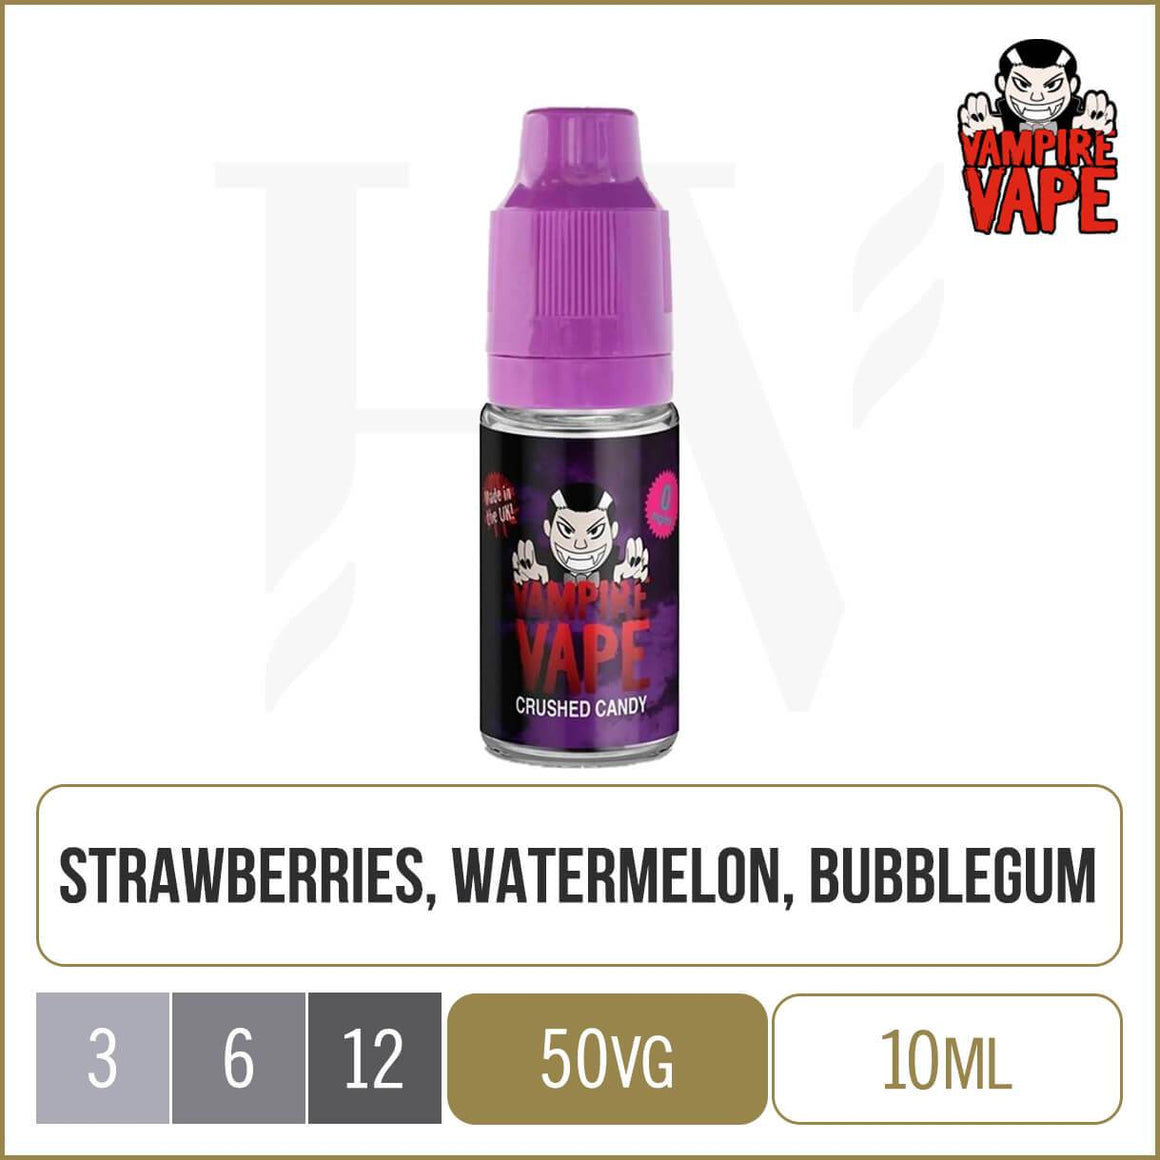 Vampire Vape crushed candy e-liquid